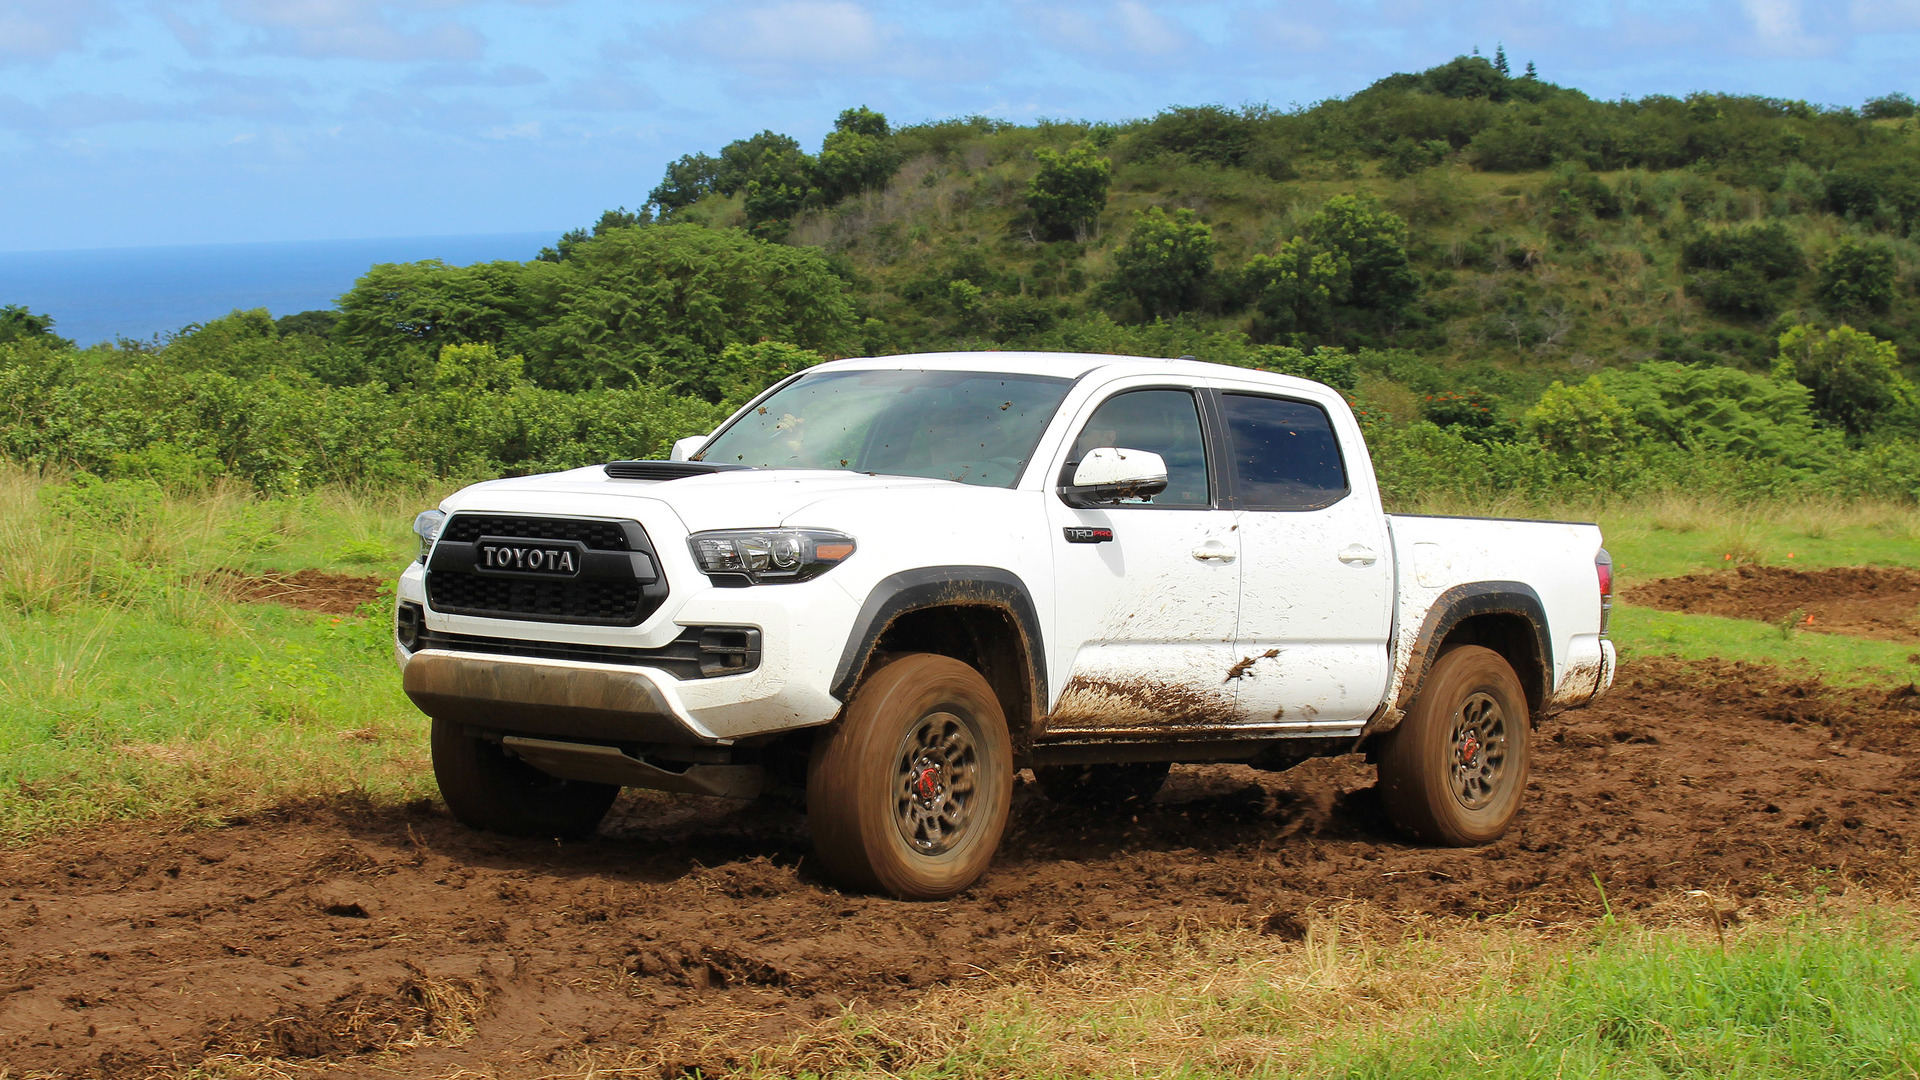 Toyota Tacoma Off Road >> 2017 Toyota Tacoma TRD Pro First Drive: No pavement, no problem